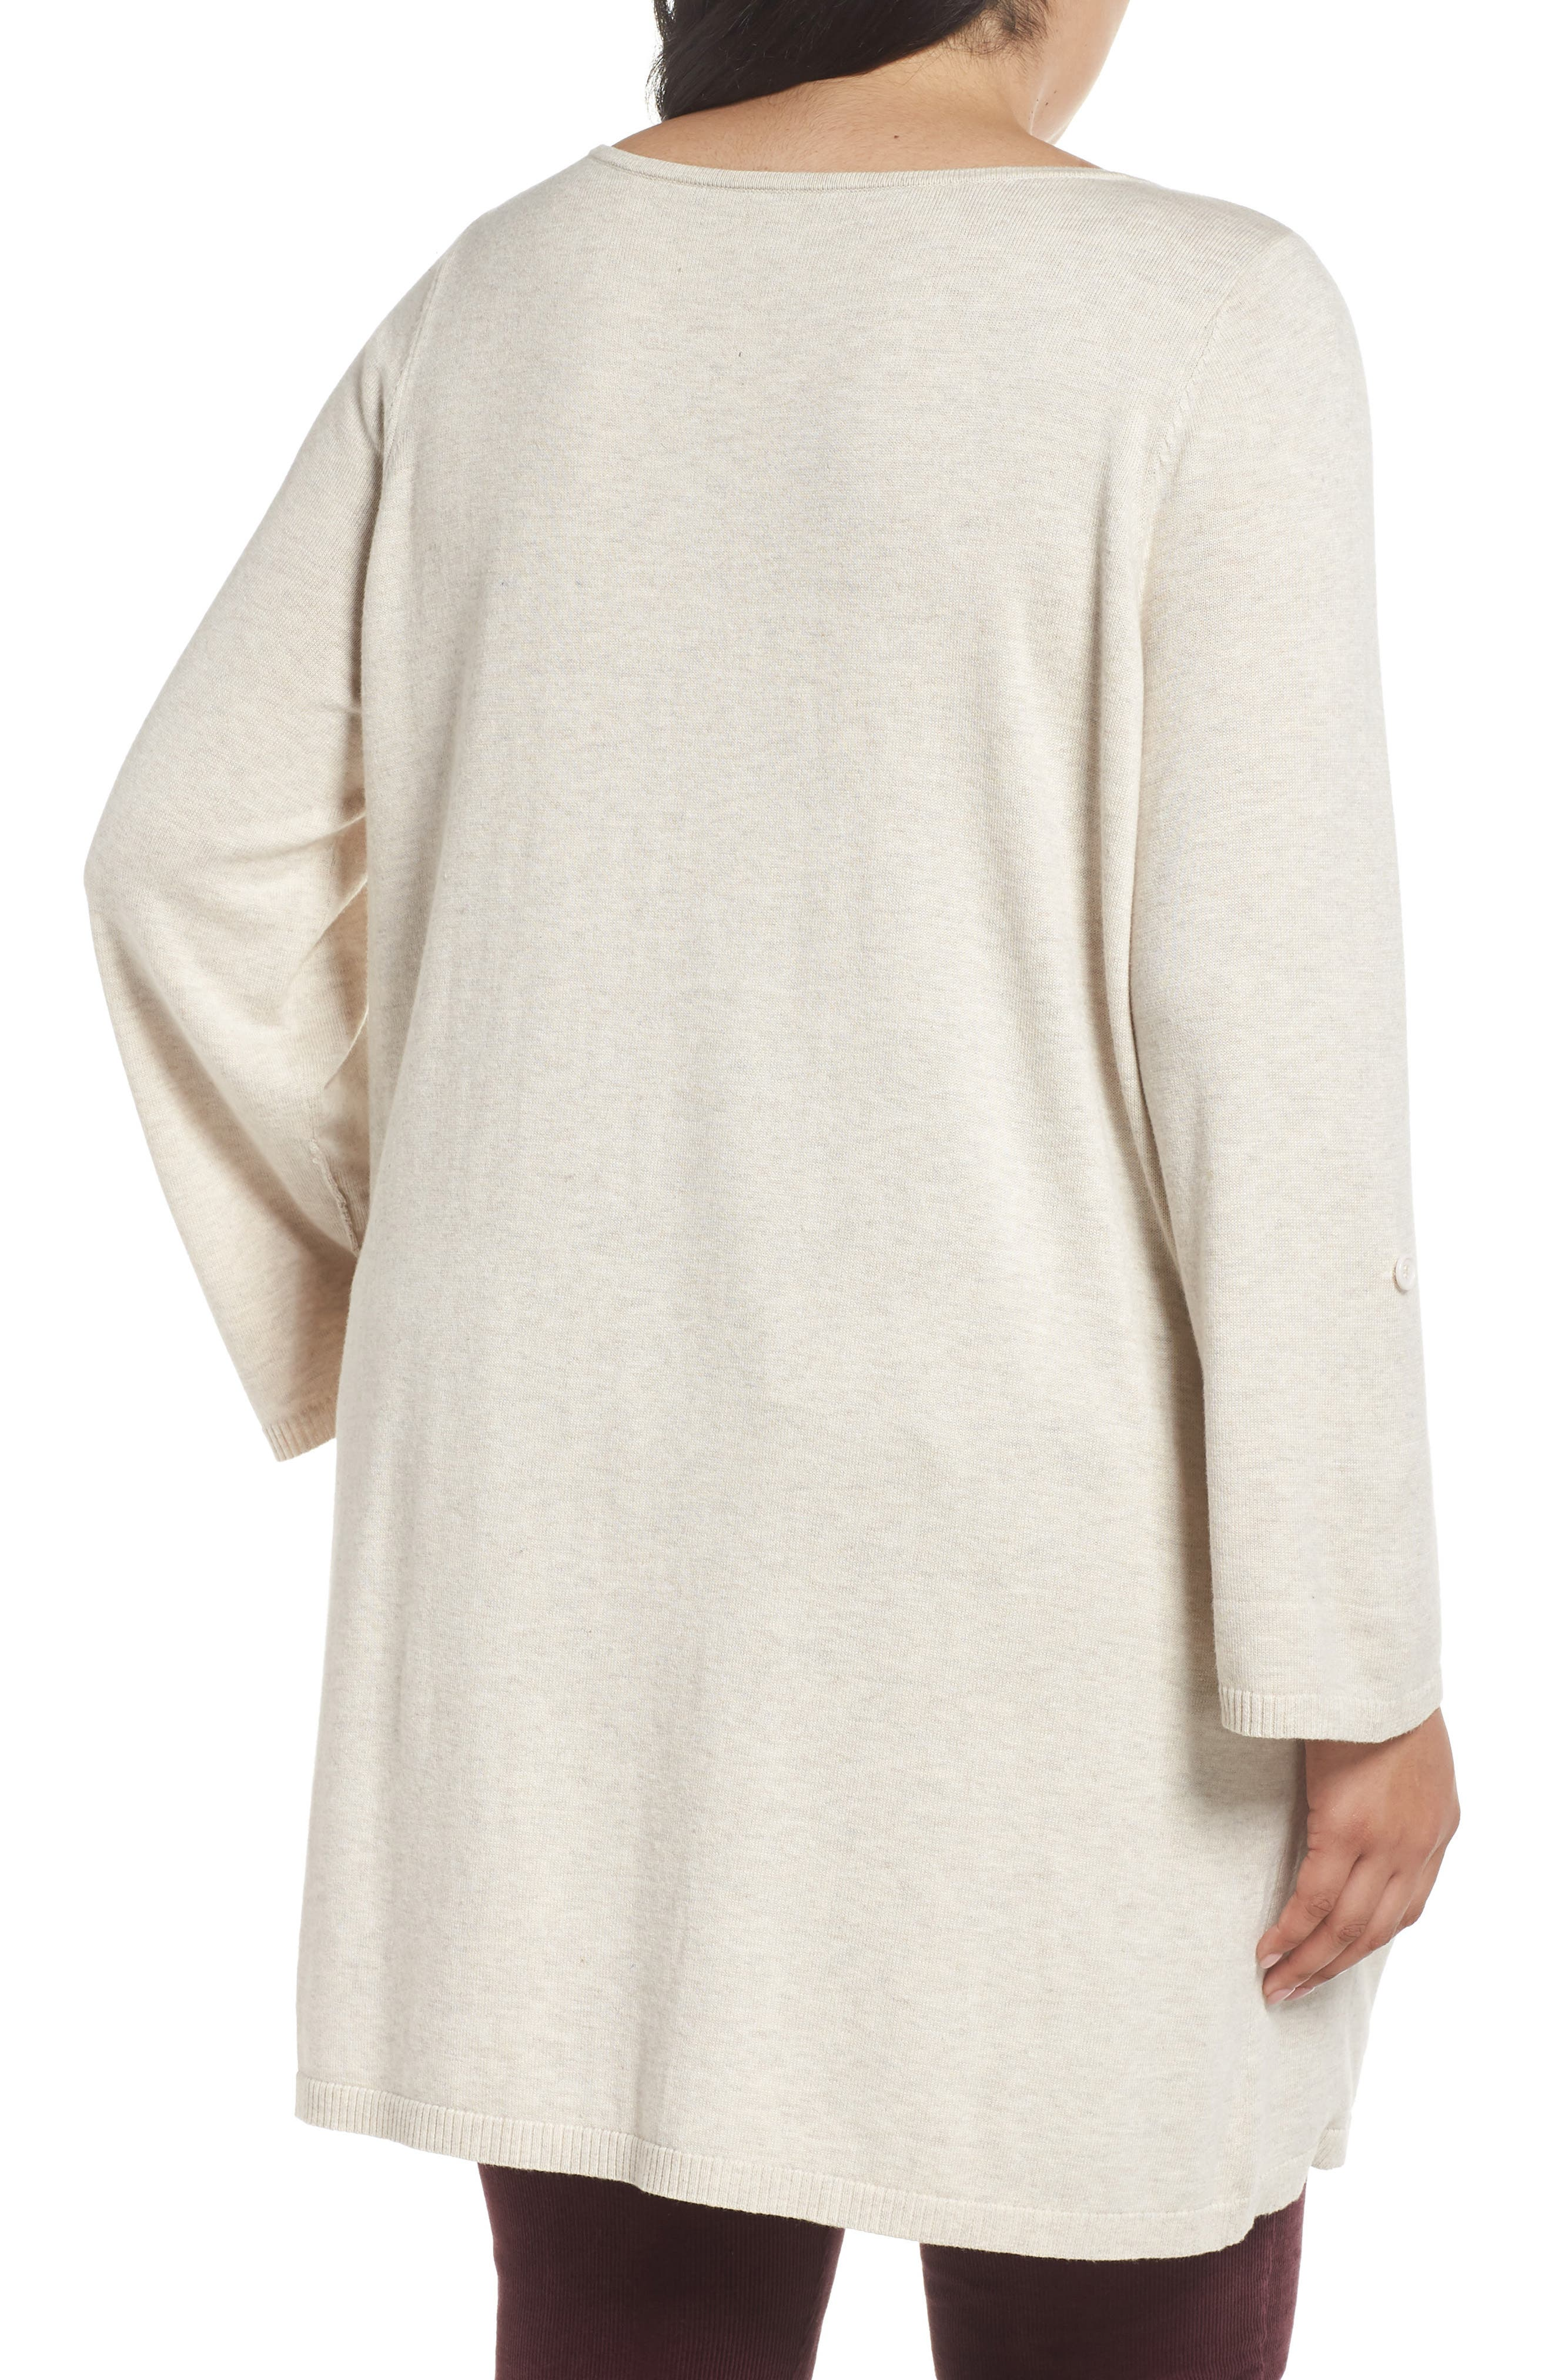 CASLON<SUP>®</SUP>,                             Roll Sleeve Tunic Sweater,                             Alternate thumbnail 2, color,                             BEIGE OATMEAL LIGHT HEATHER